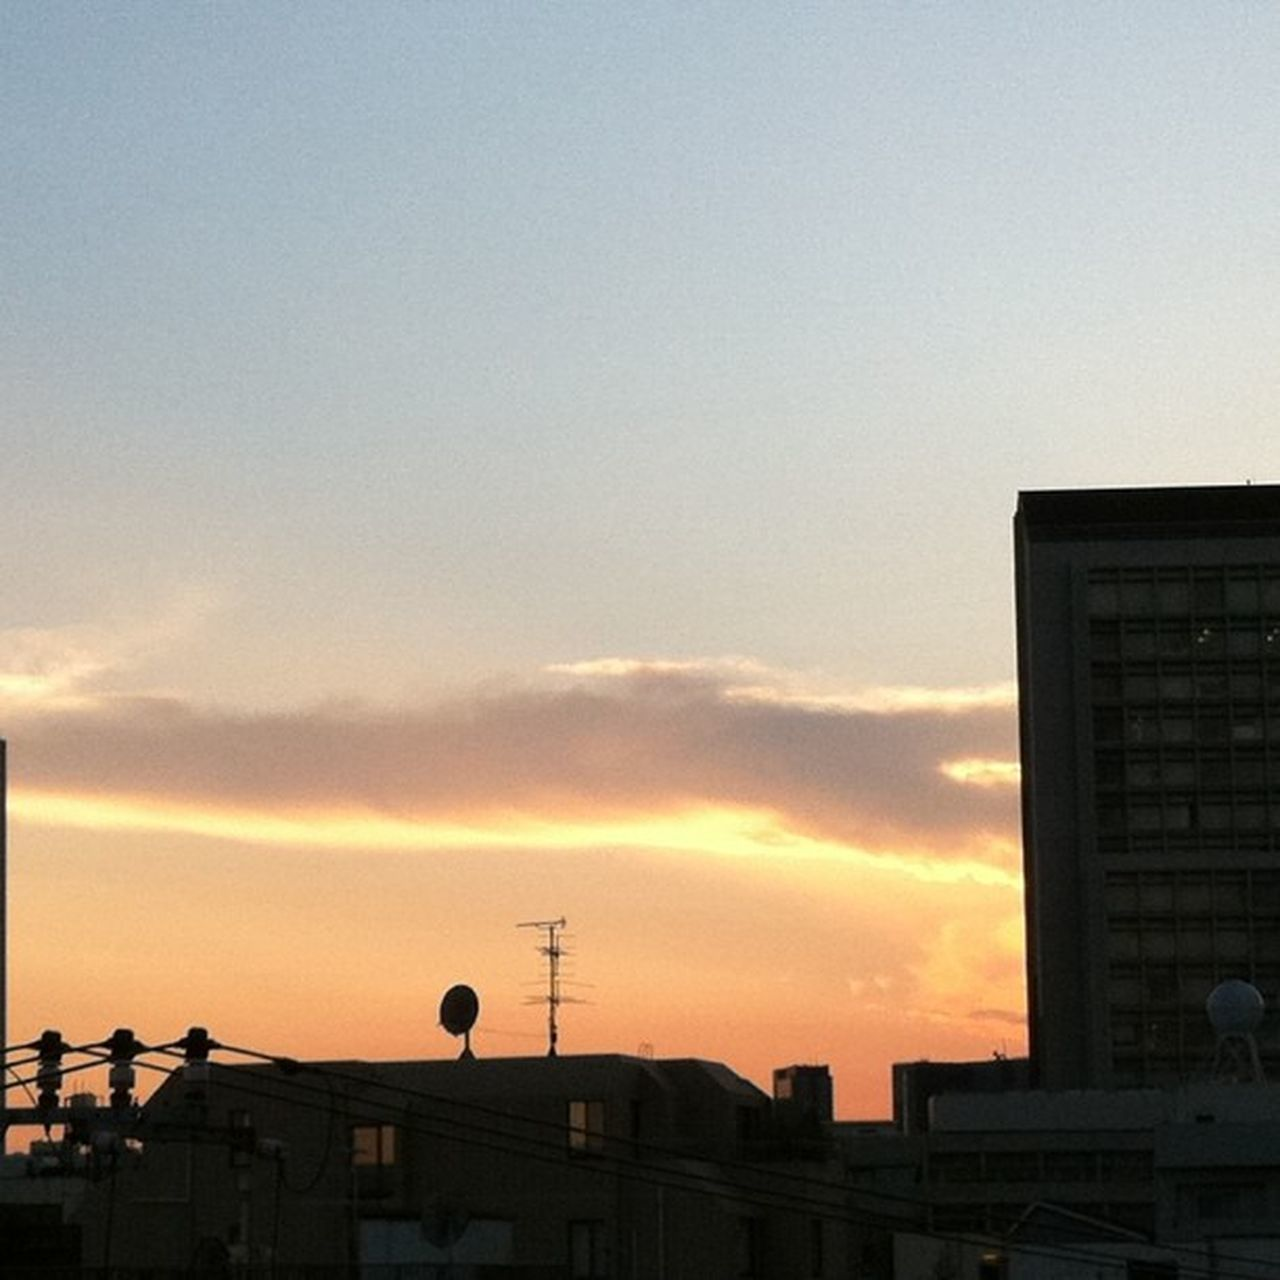 sunset, built structure, architecture, building exterior, sky, city, silhouette, cloud - sky, outdoors, no people, travel destinations, low angle view, nature, cityscape, day